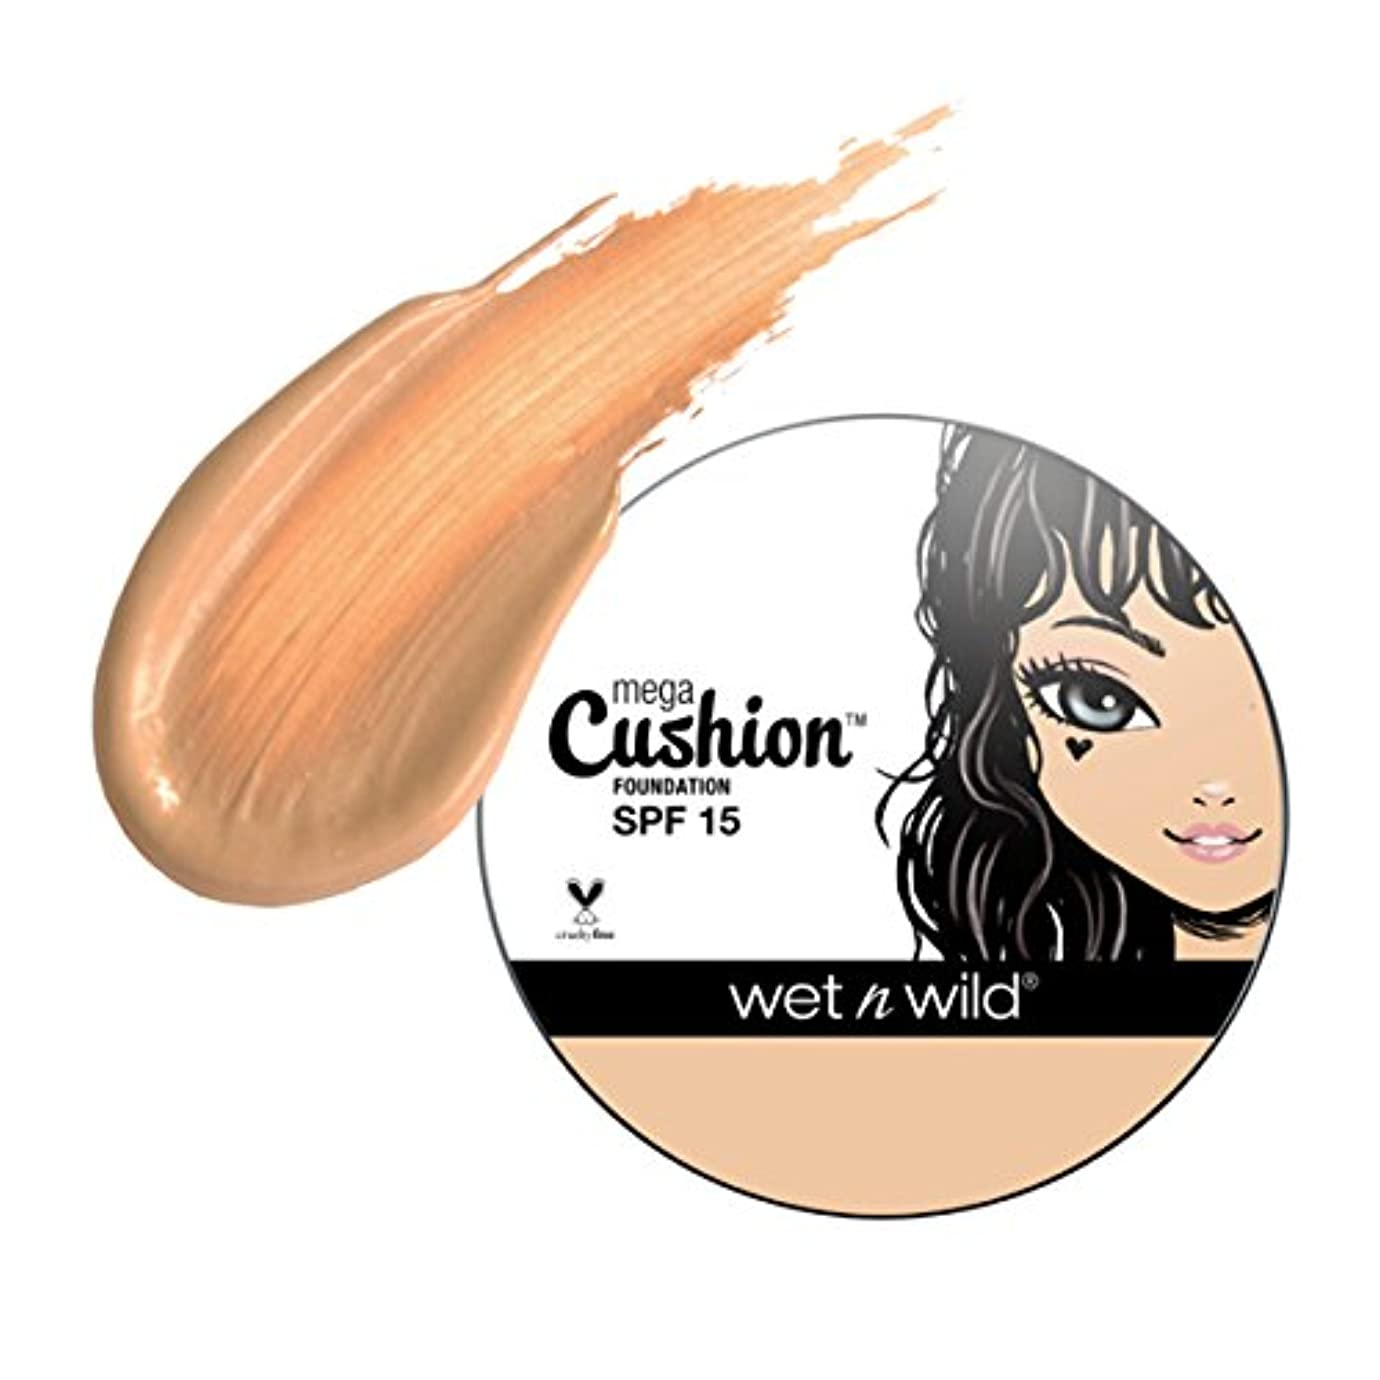 役に立たない相手狂う(3 Pack) WET N WILD MegaCushion Foundation SPF 15 - Buff Beige (並行輸入品)